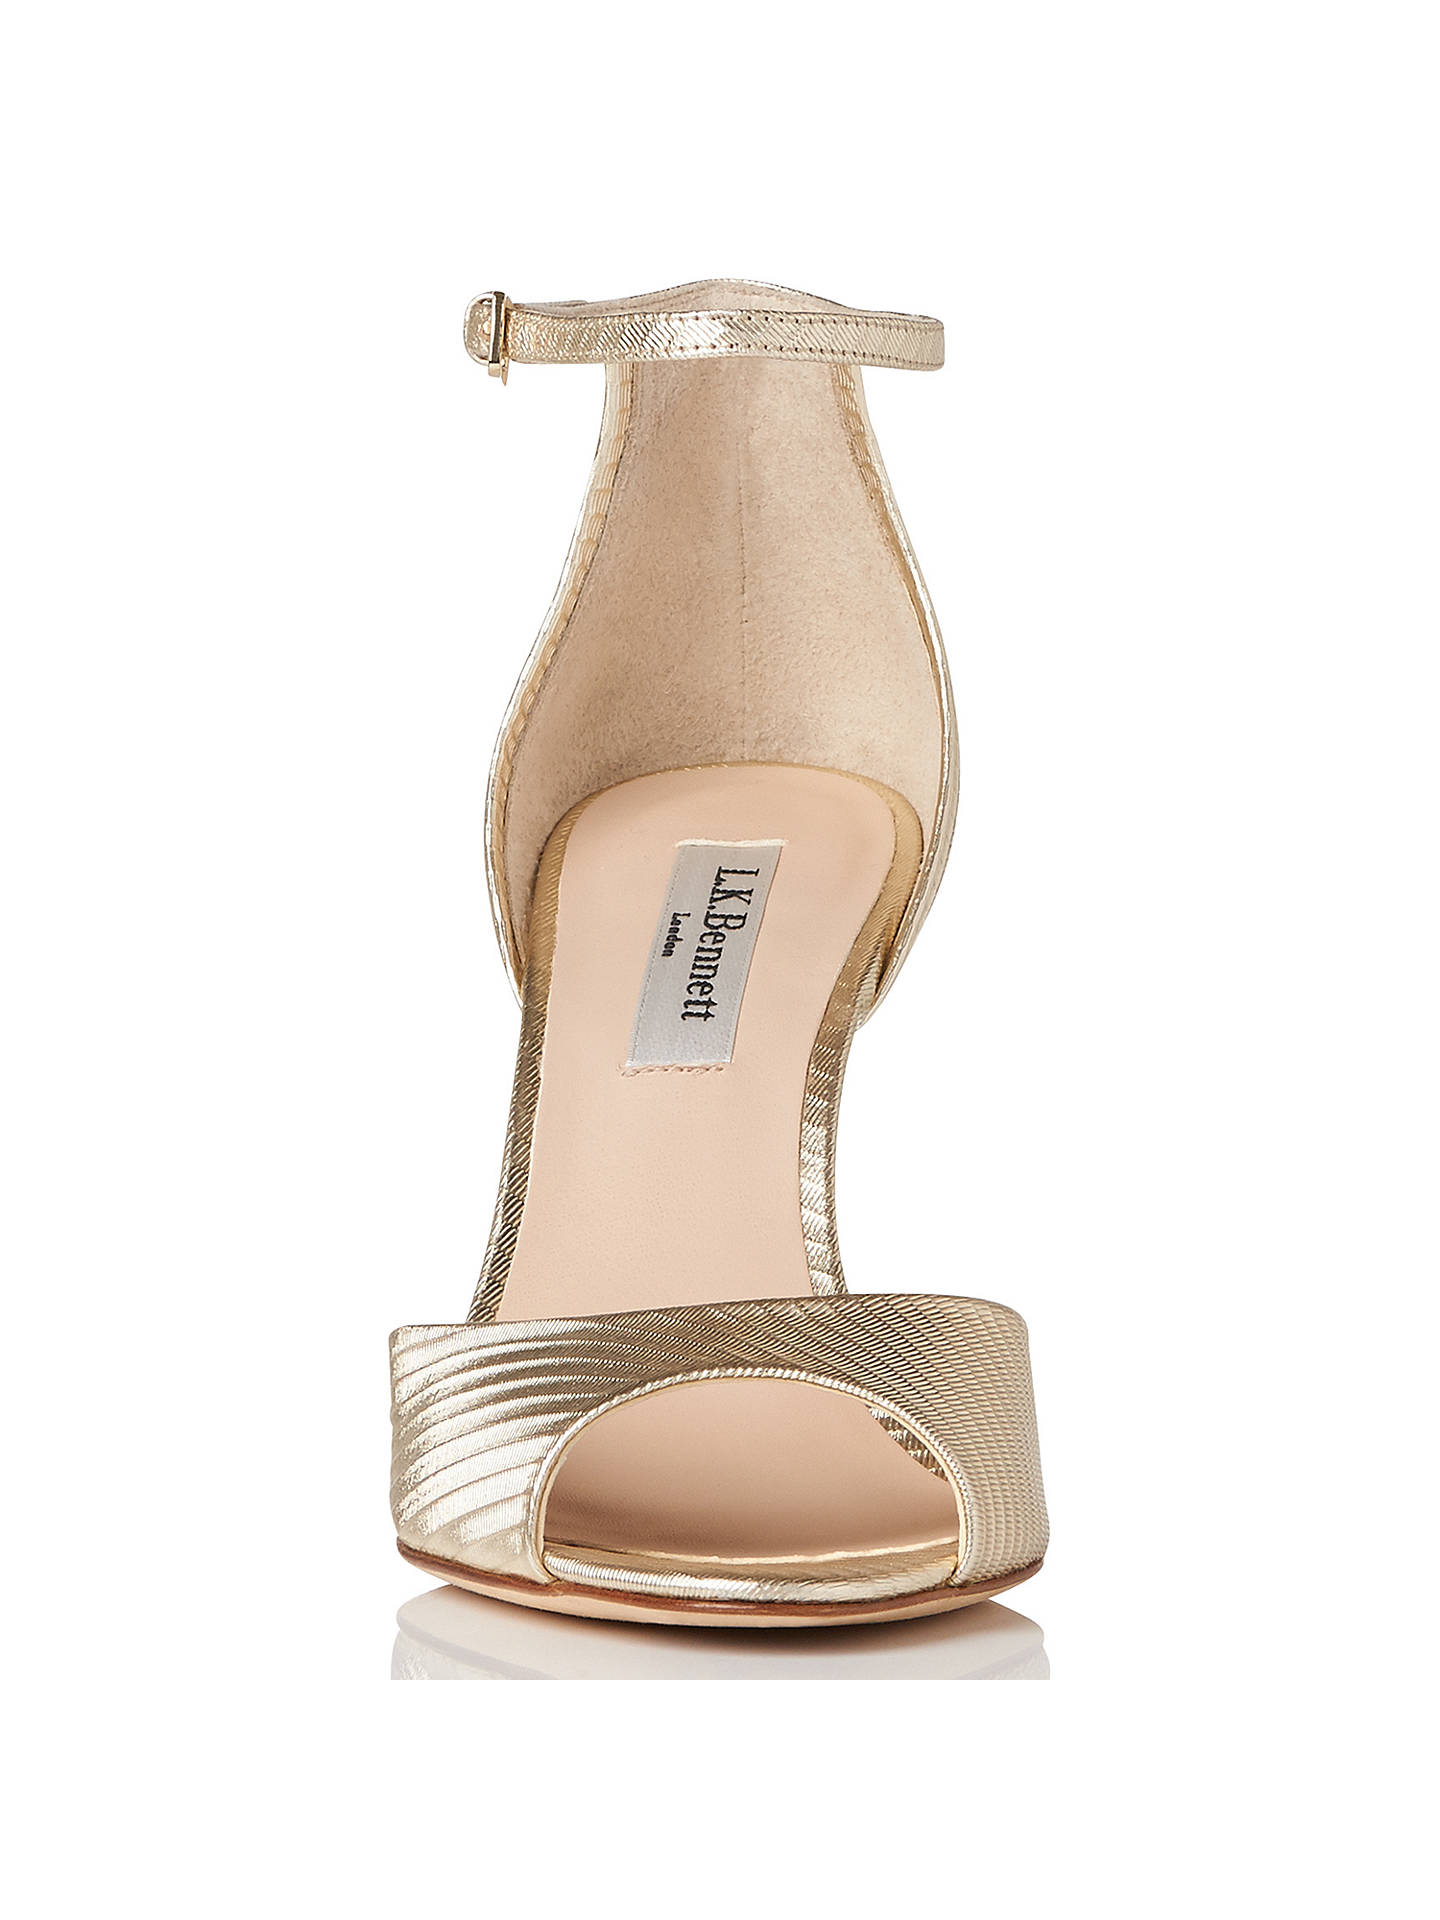 a89f2fe595 ... Buy L.K. Bennett Coco Wedge Heeled Sandals, Soft Gold Leather, 2 Online  at johnlewis